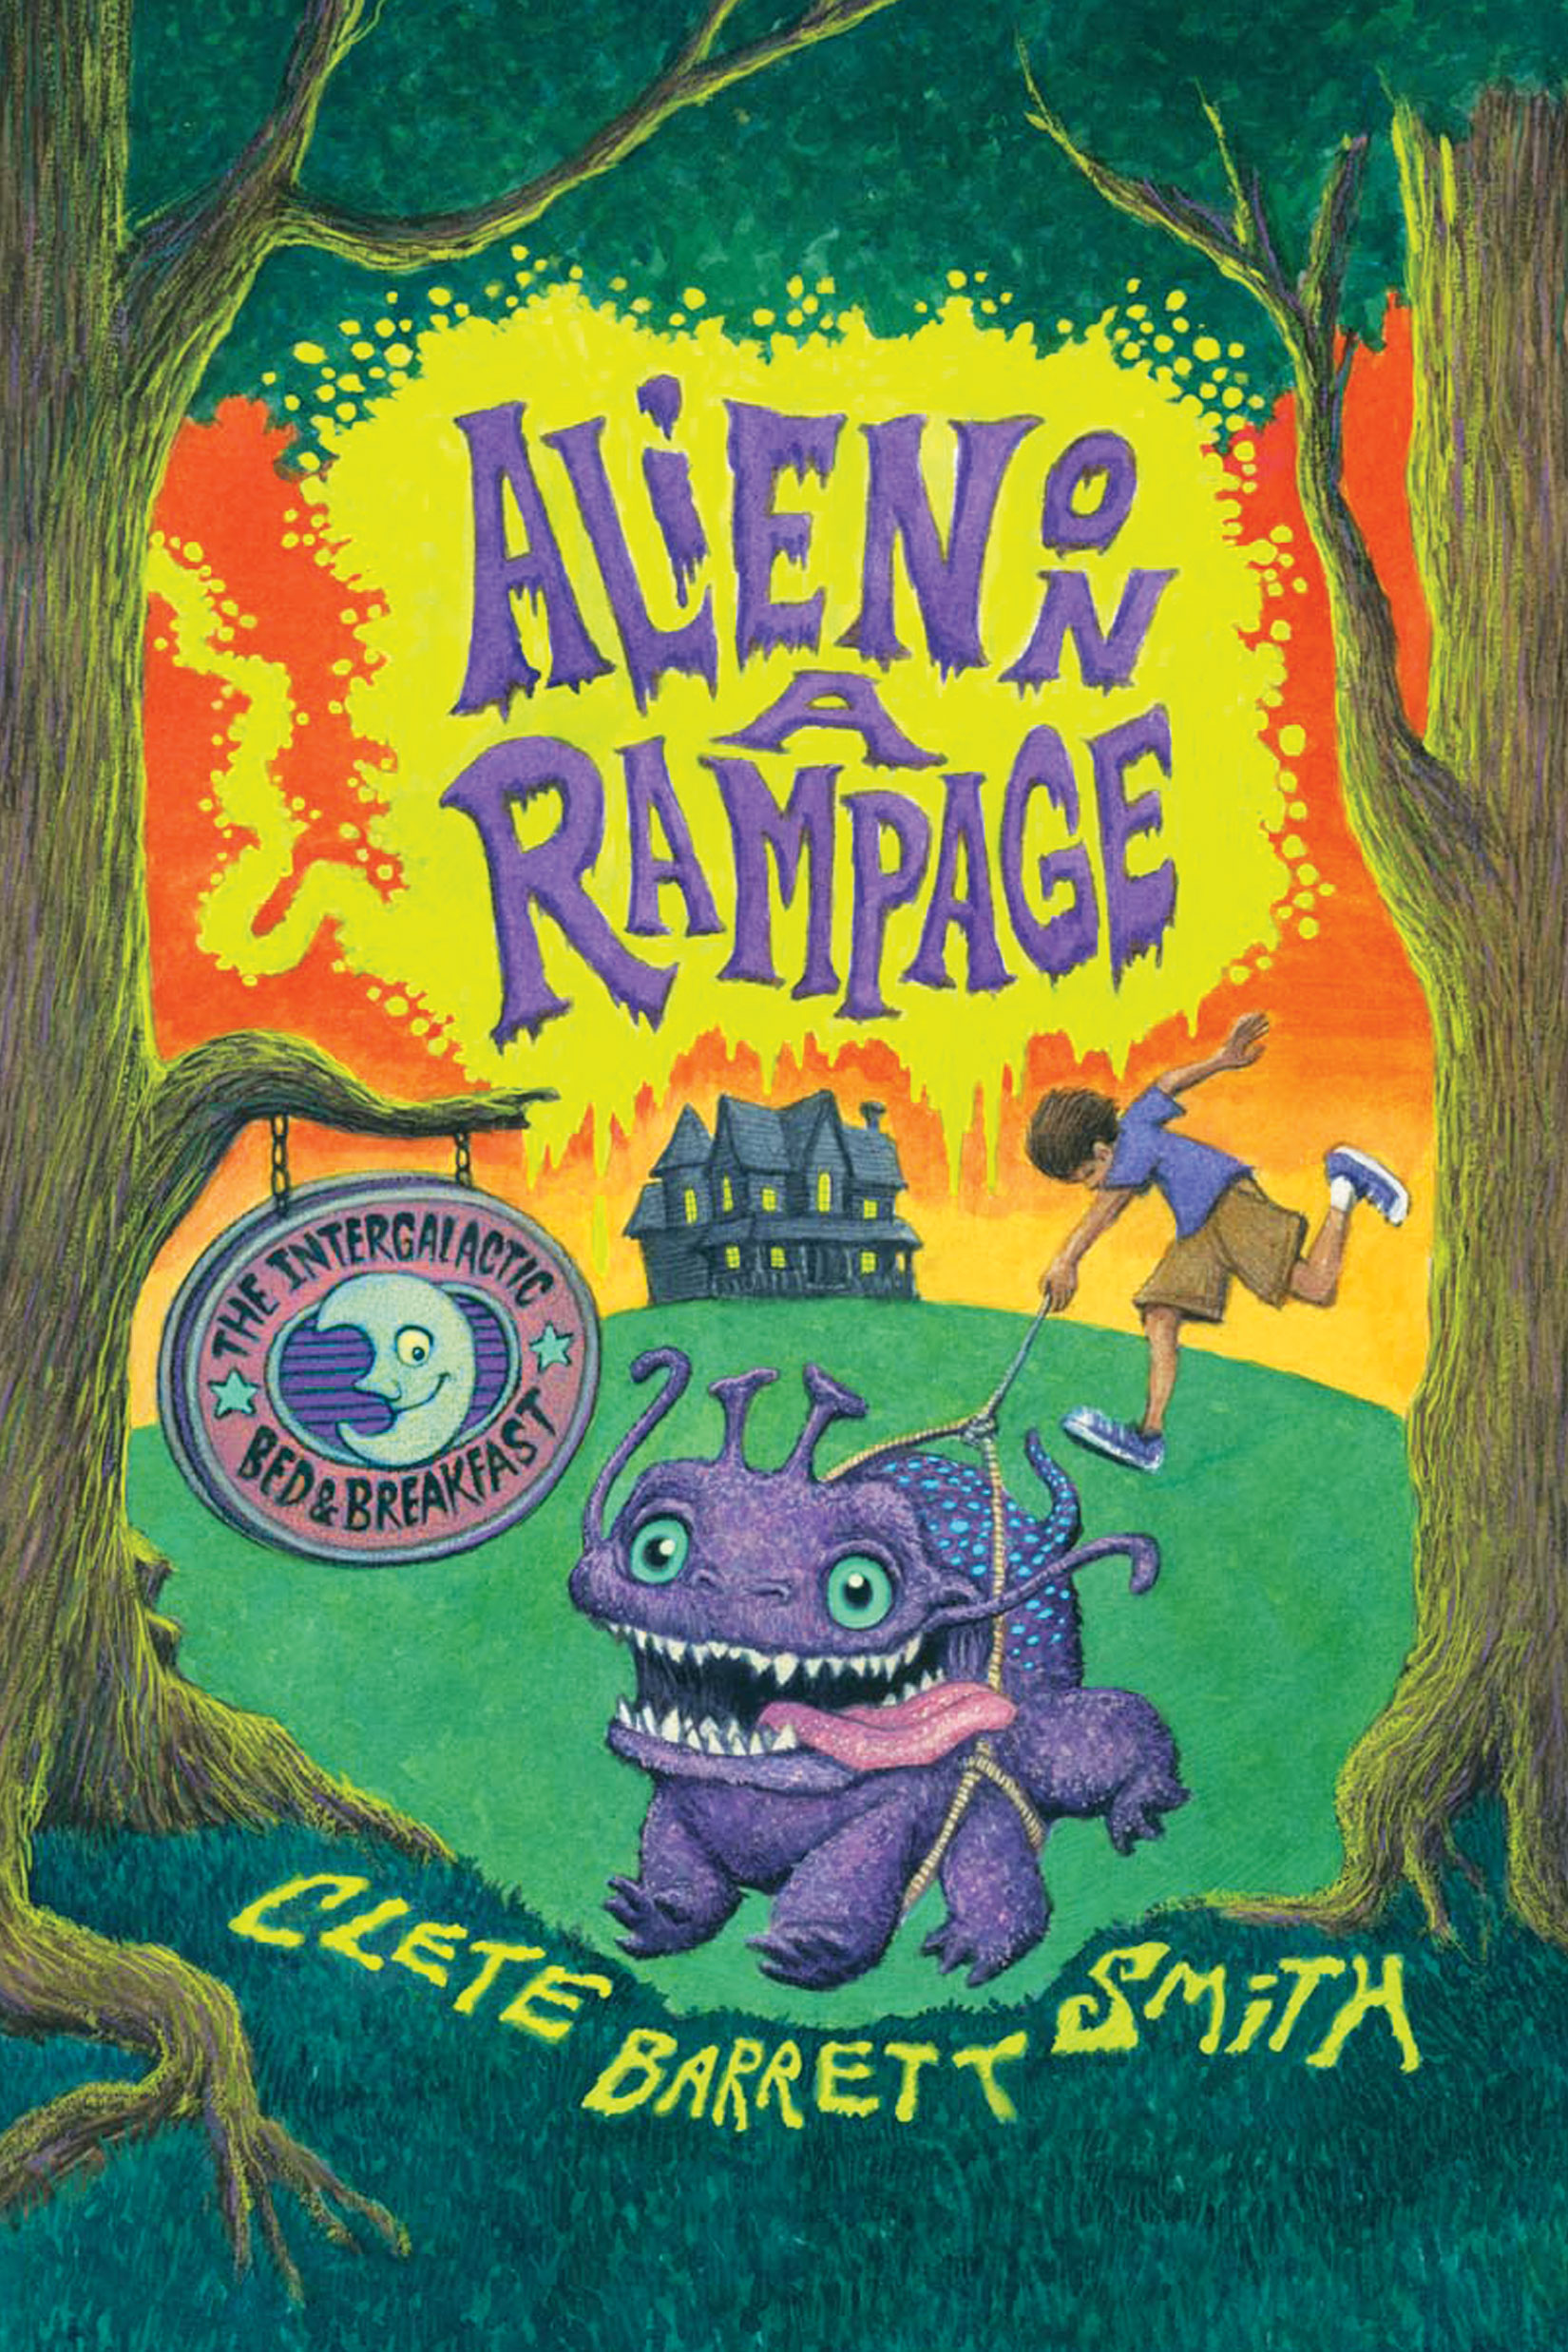 Book Cover for Alien on a Rampage showing an image of Snarffle, the purple alien pet, and a sign for The Intergalactic Bed and Breakfast with the B and B as the distant backdrop